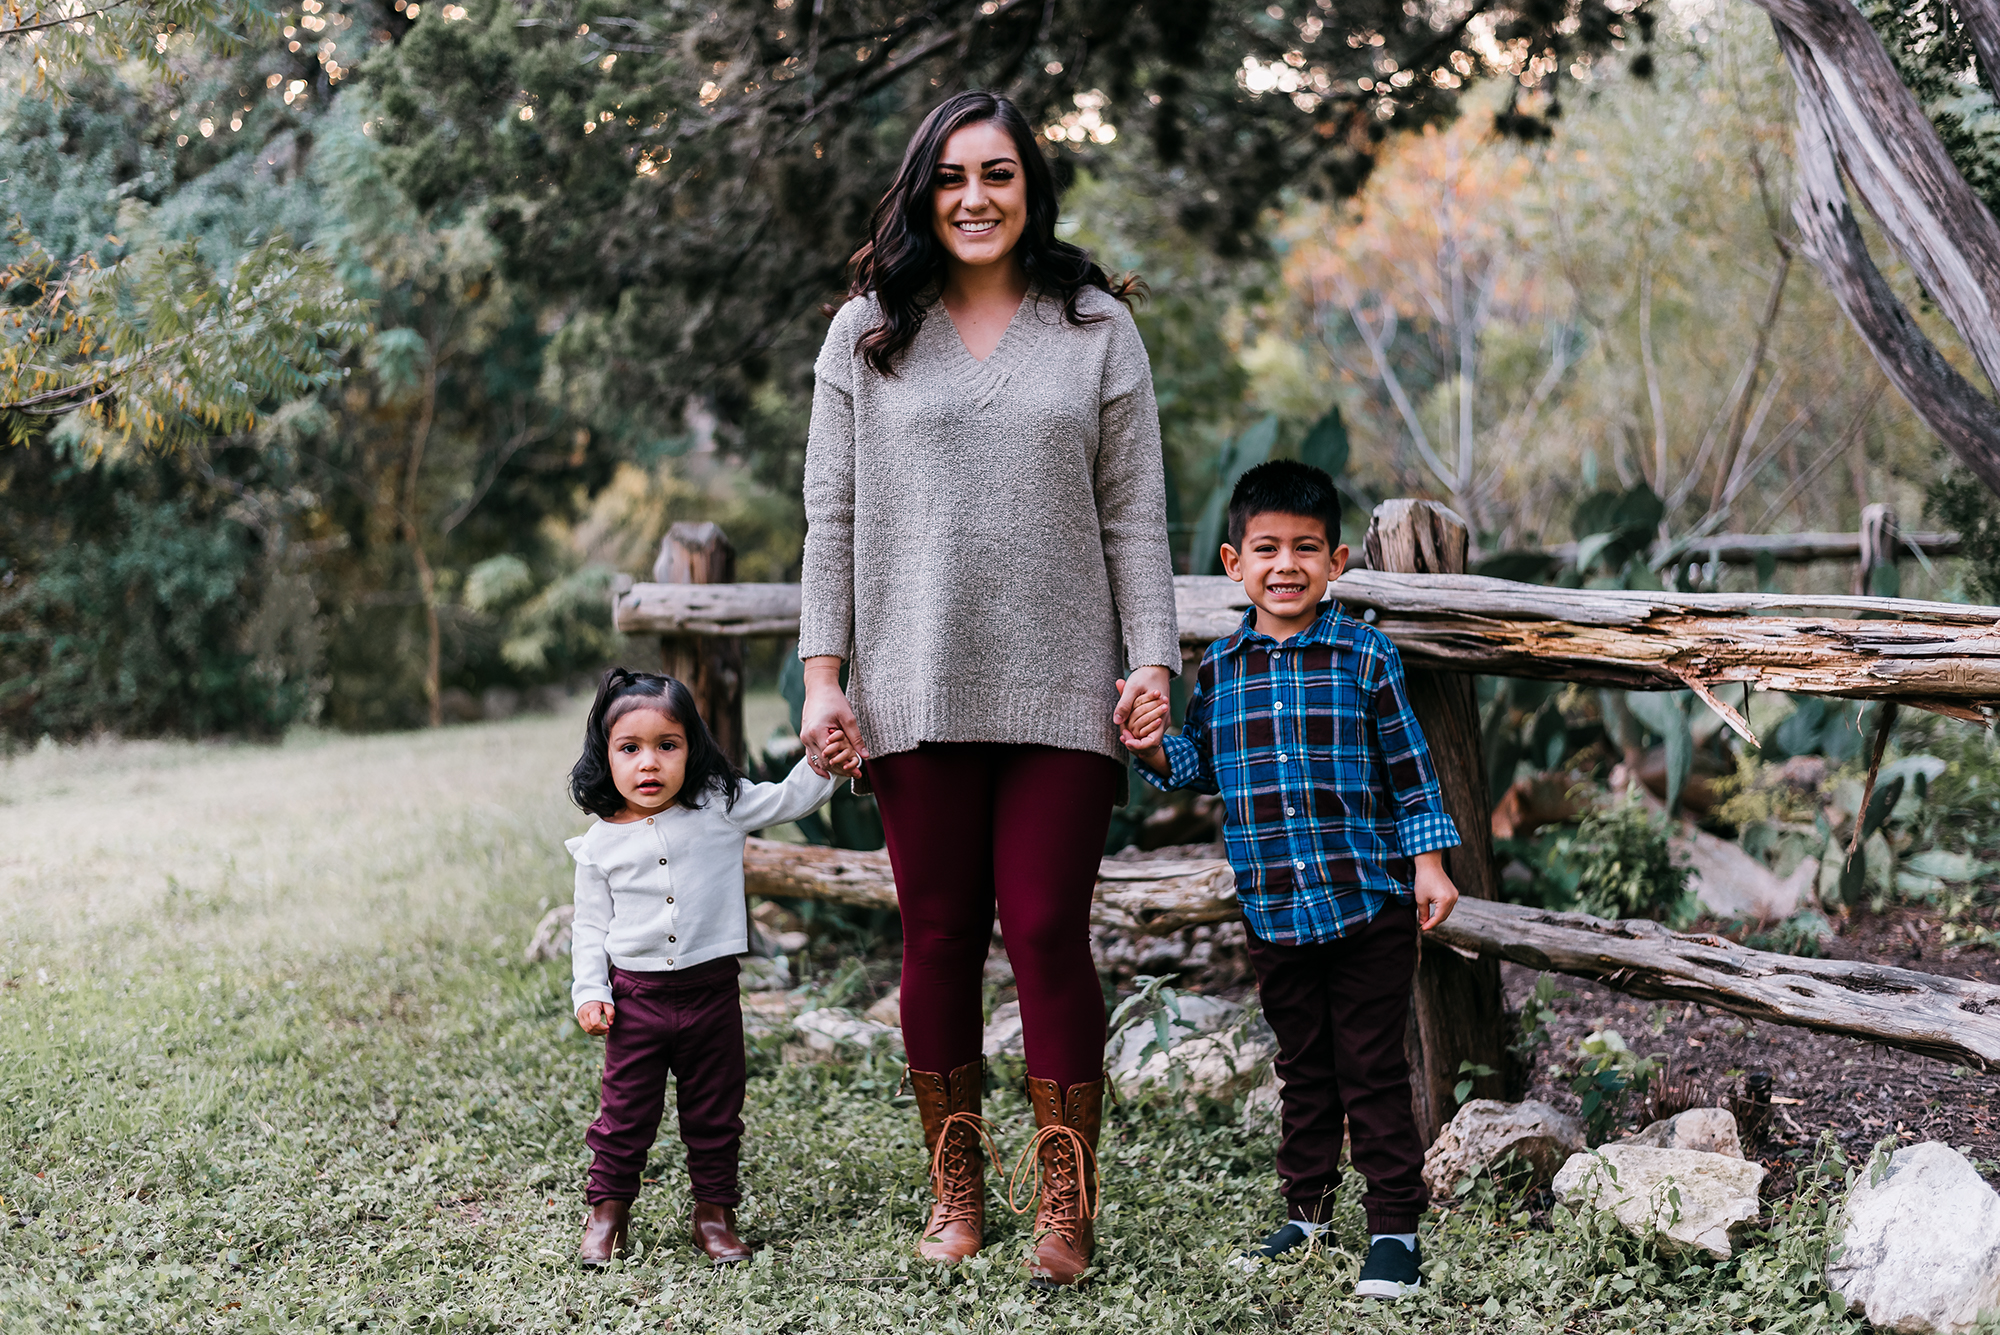 samantha whitford photography bull creek family session atx (6).jpg